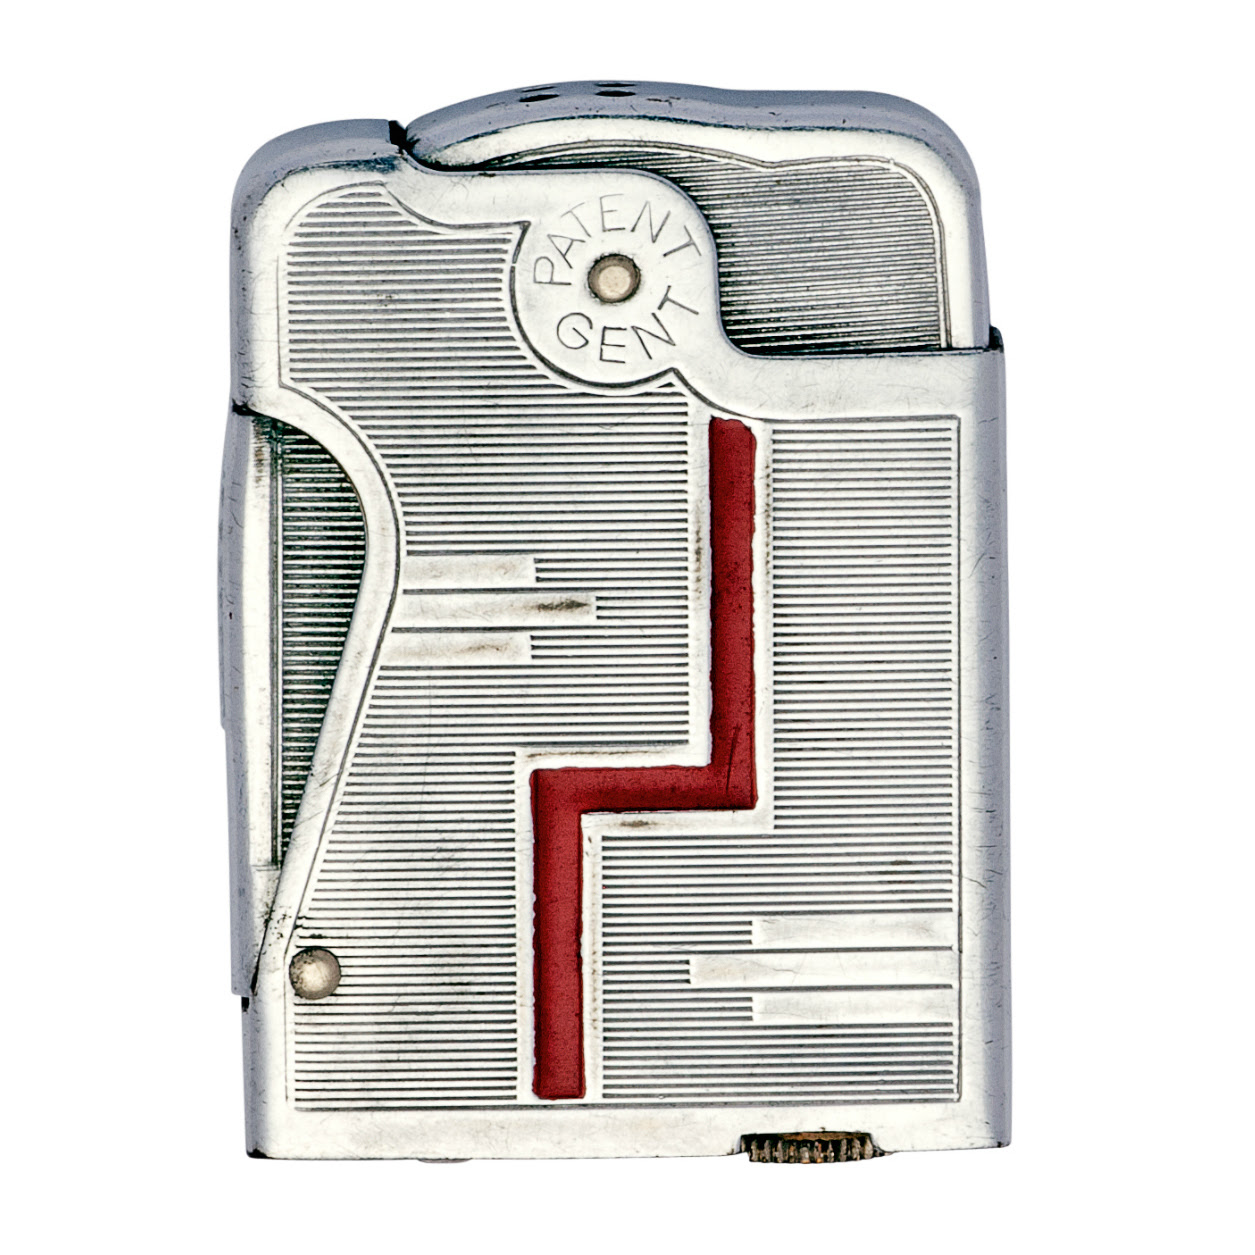 Cigarette lighter (Austria, 1932), produced by Arthur Dubsky, Vienna (© Rodney and Diana Capstick-Dale)